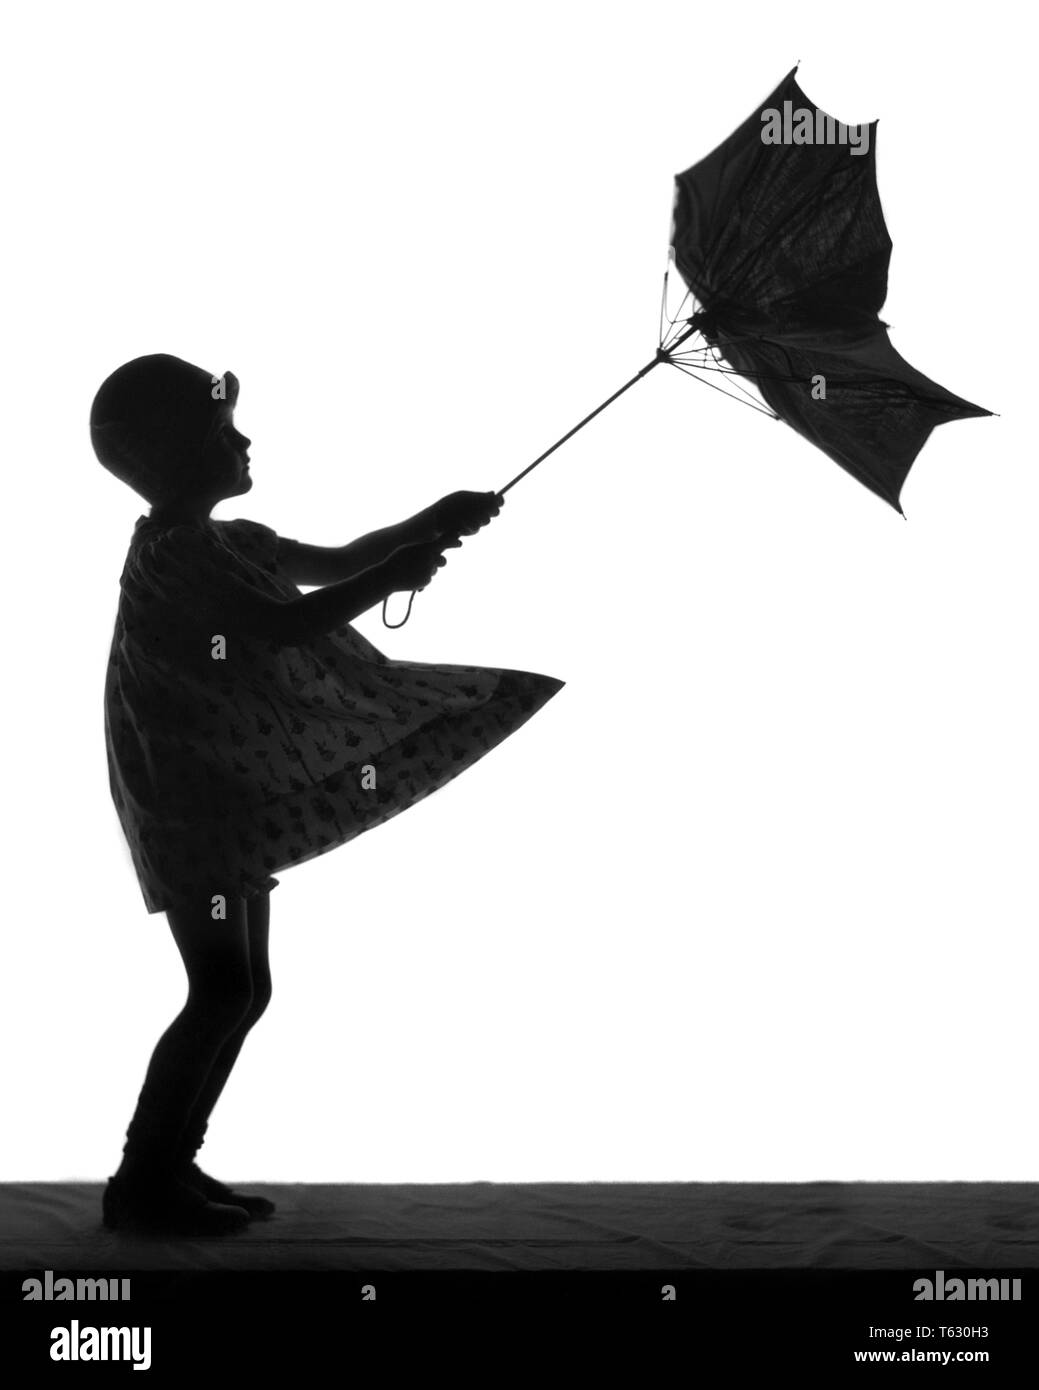 1920s ANONYMOUS SILHOUETTE OF LITTLE GIRL WITH UMBRELLA TURNED INSIDE OUT IN THE WIND - s1689 HAR001 HARS OUTLINE SADNESS SILHOUETTED EXCITEMENT TURNED LITTLE GIRL CONCEPTUAL STYLISH WINDY CLOCHE HAT ANONYMOUS BAD WEATHER GUSTY INSIDE OUT JUVENILES BLACK AND WHITE HAR001 OLD FASHIONED - Stock Image